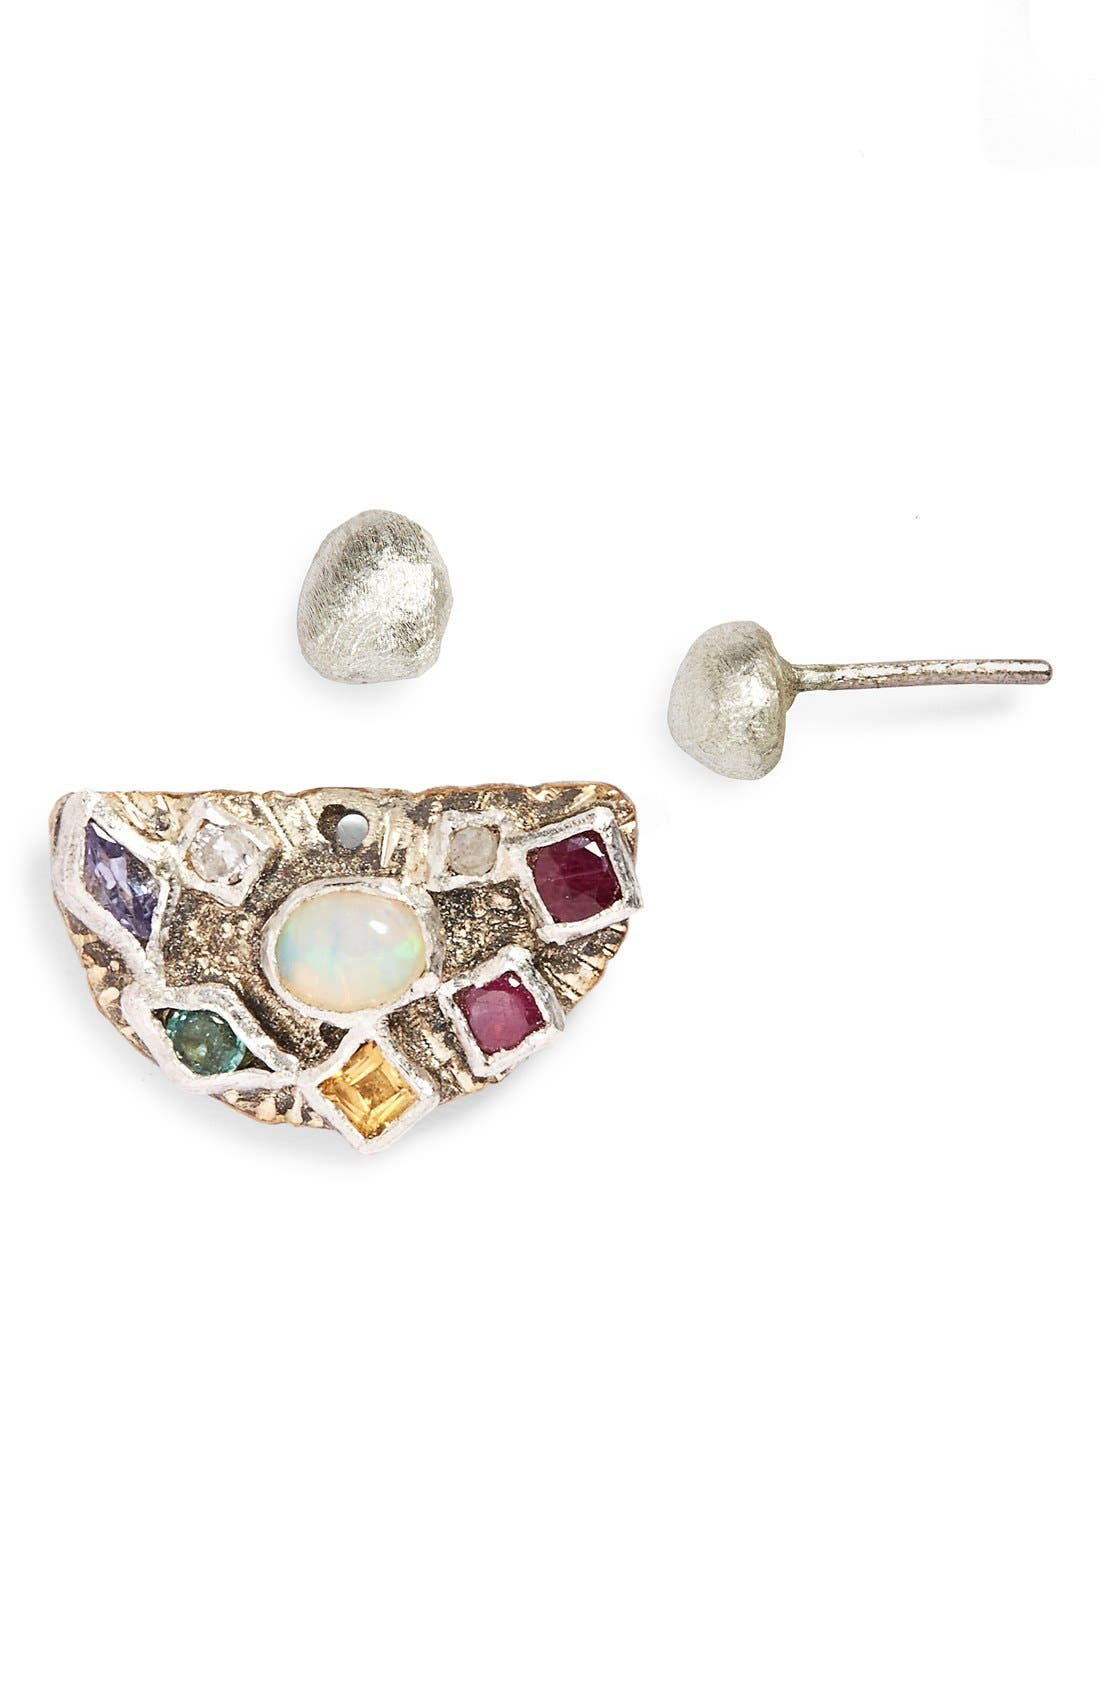 Main Image - Franny E Jewelry Multistone Ear Jacket with Sterling Silver Stud